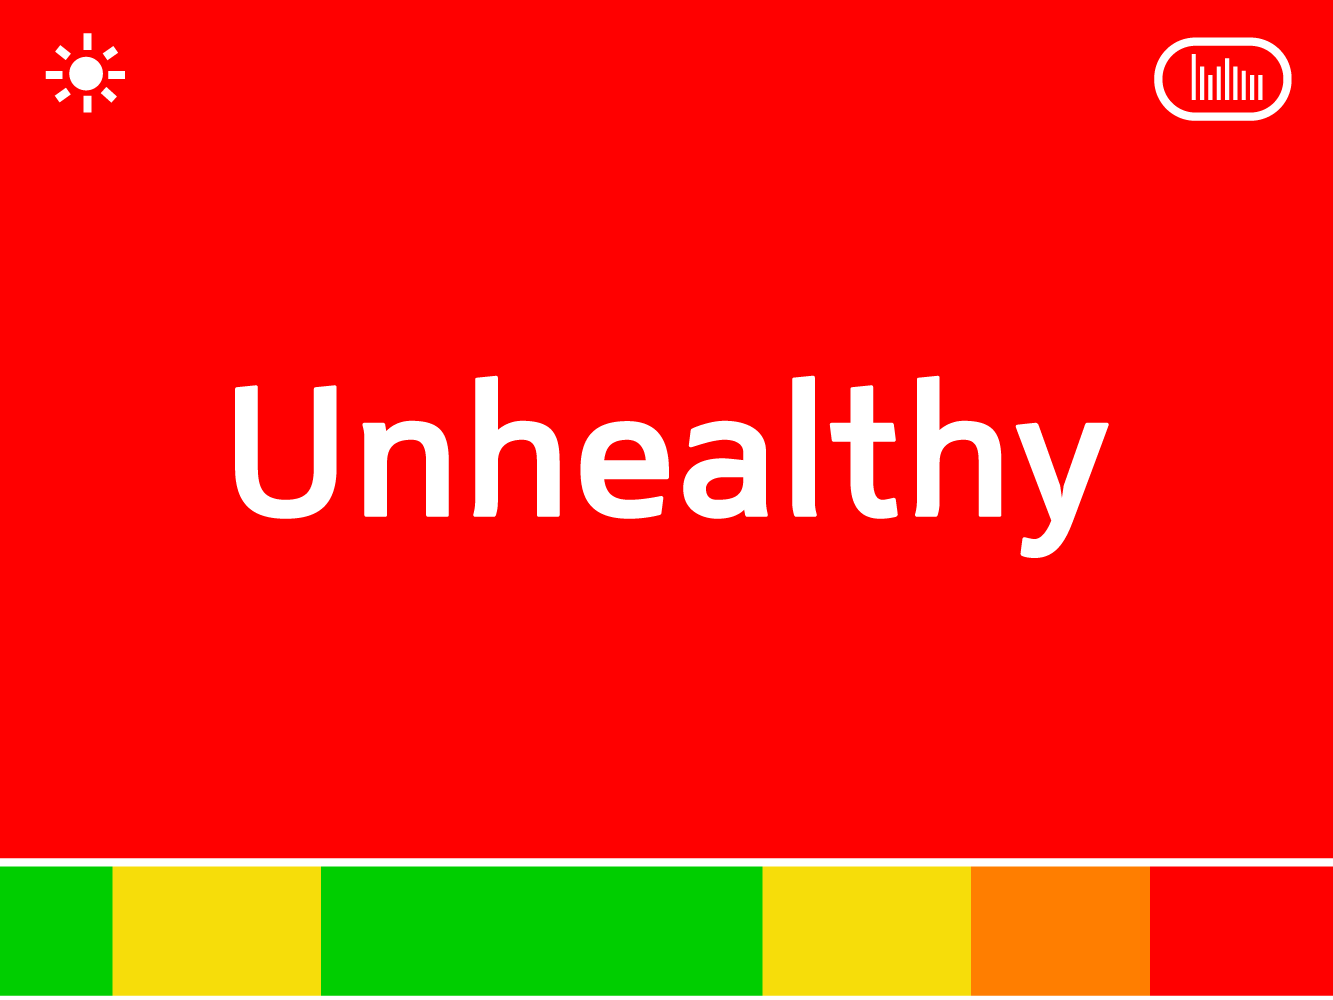 Concept 2: Using numbers or descriptive adjectives to indicate air quality.